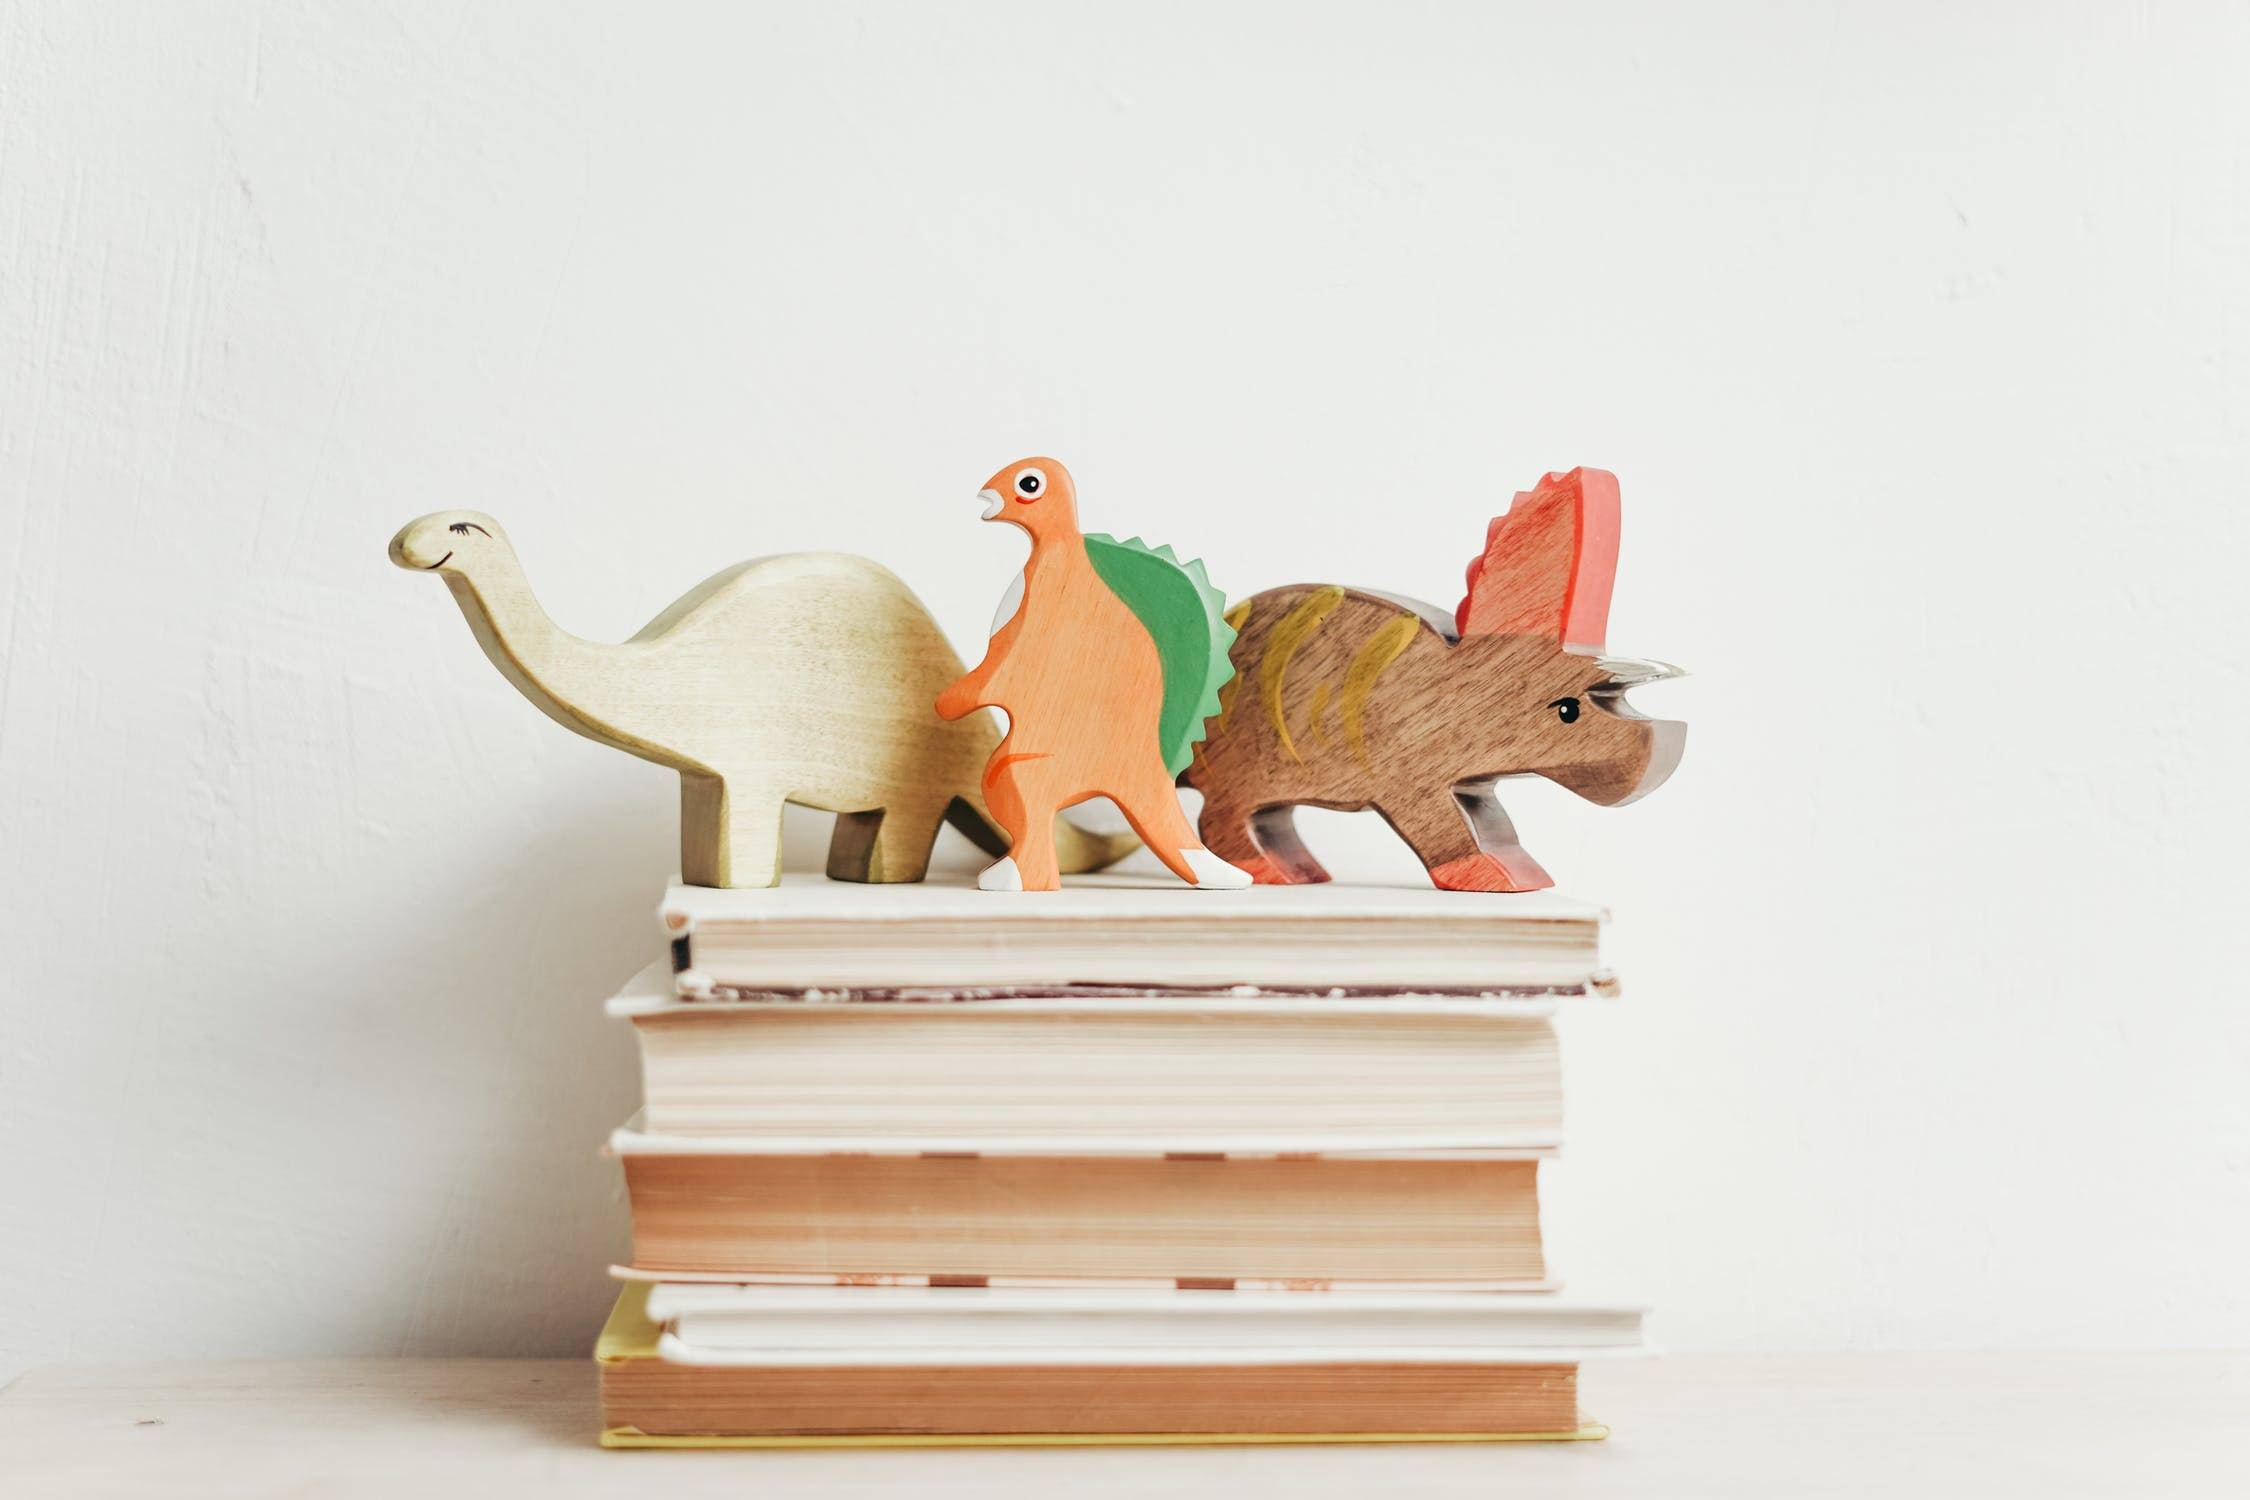 Dinosaurs on a stack of books